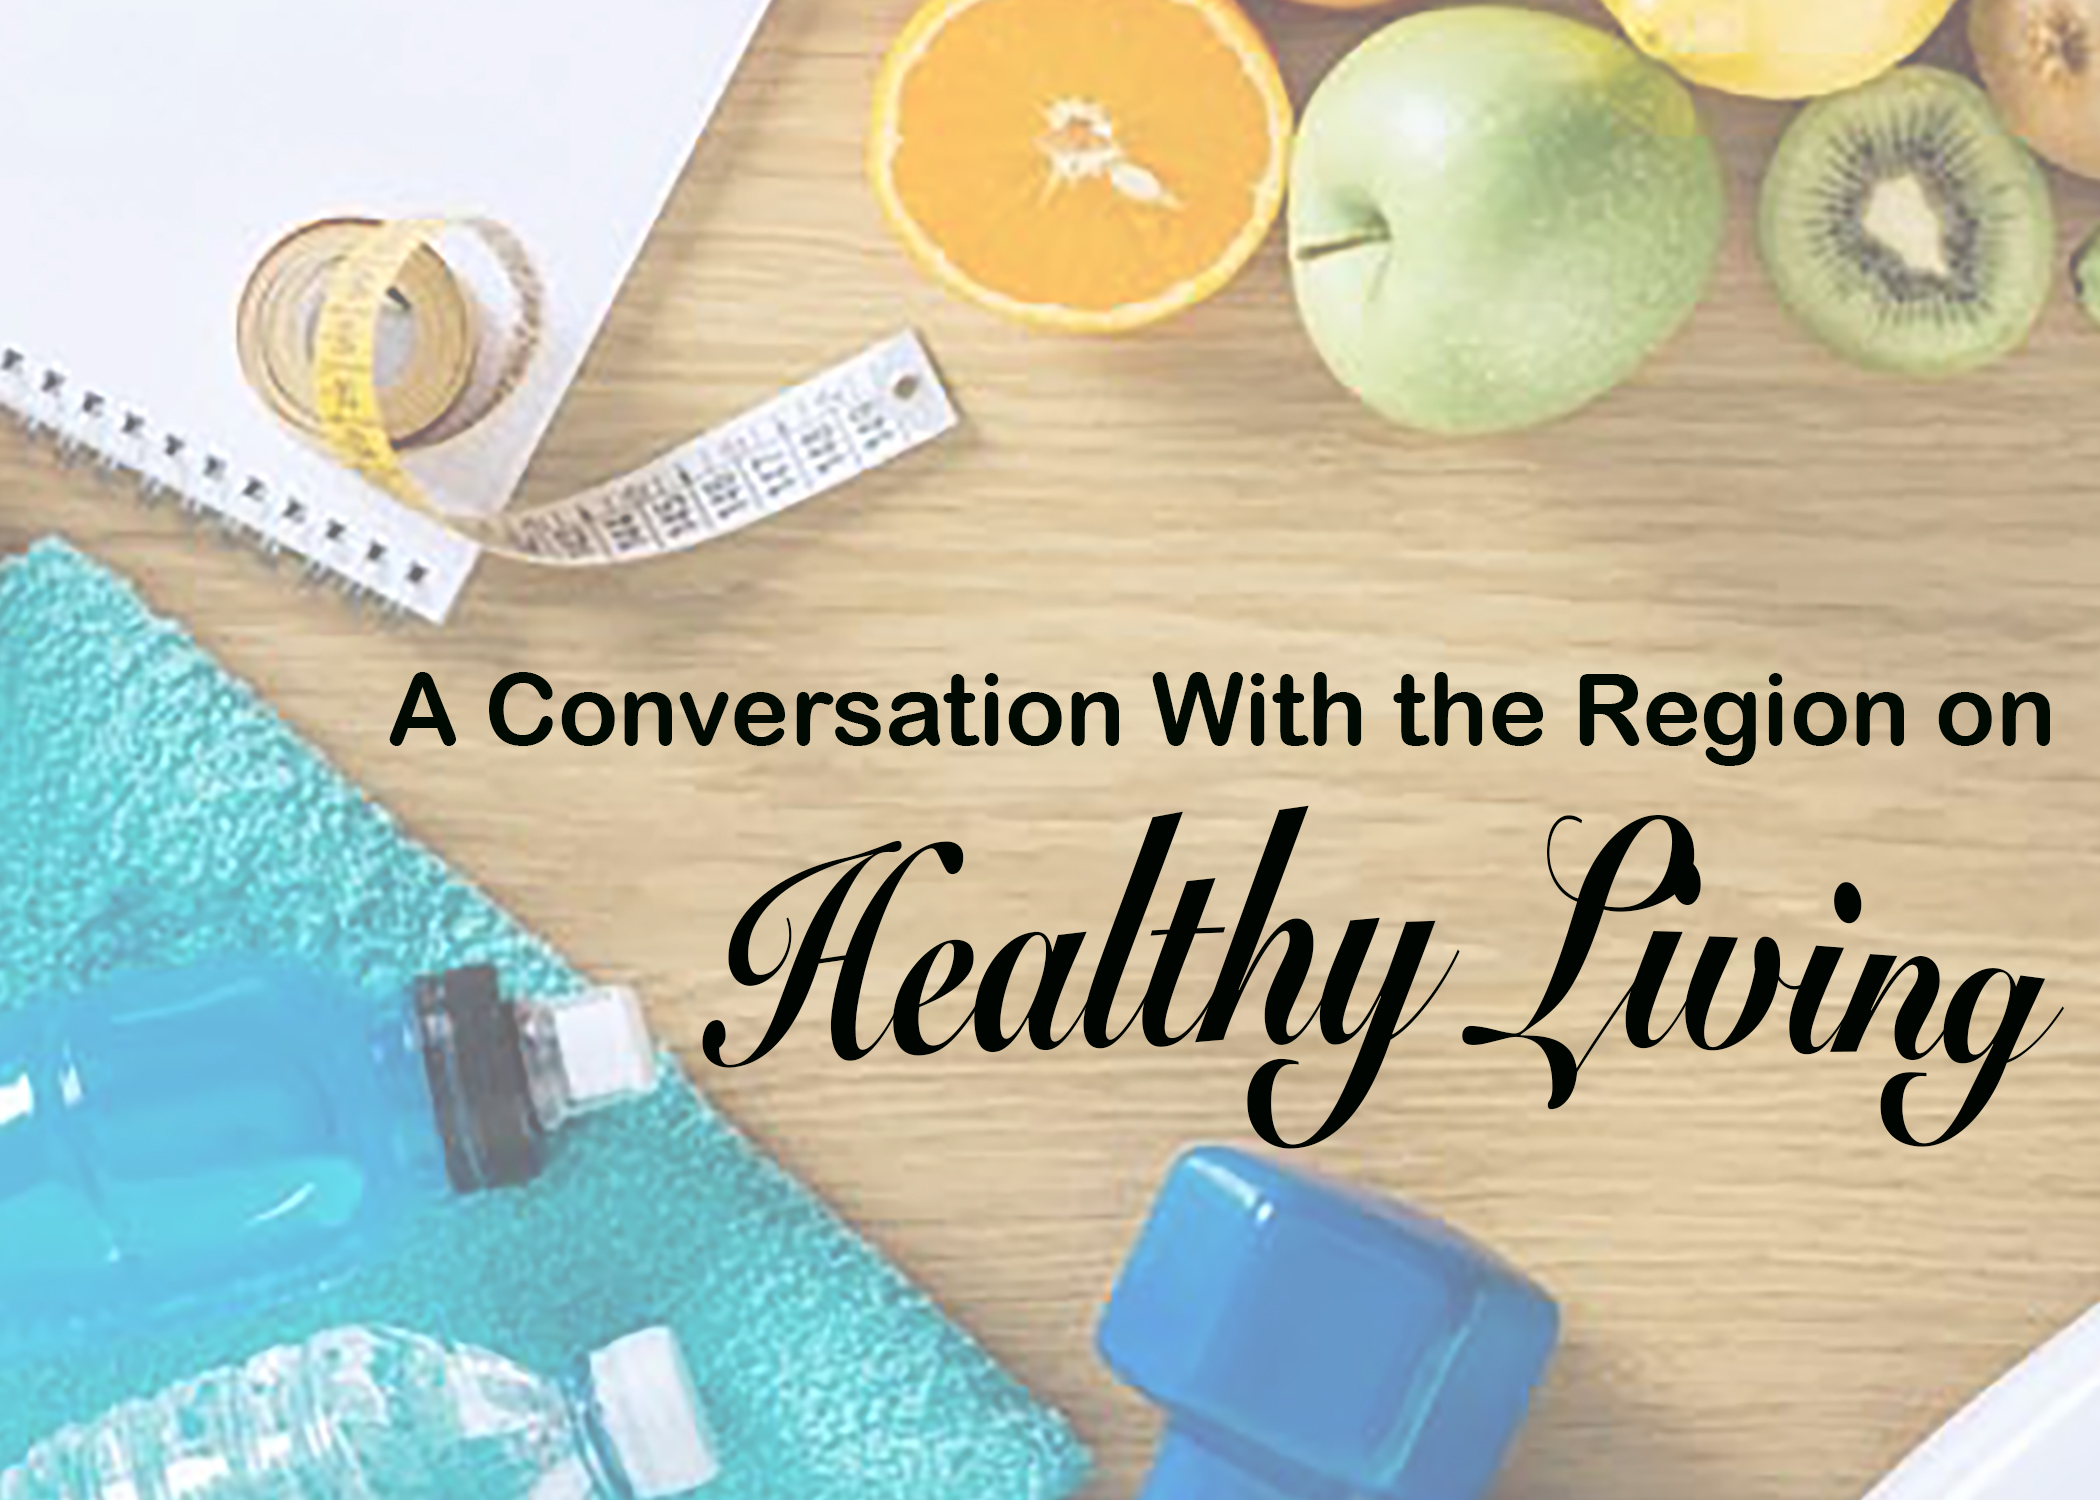 A Conversation With the Region on Healthy Living